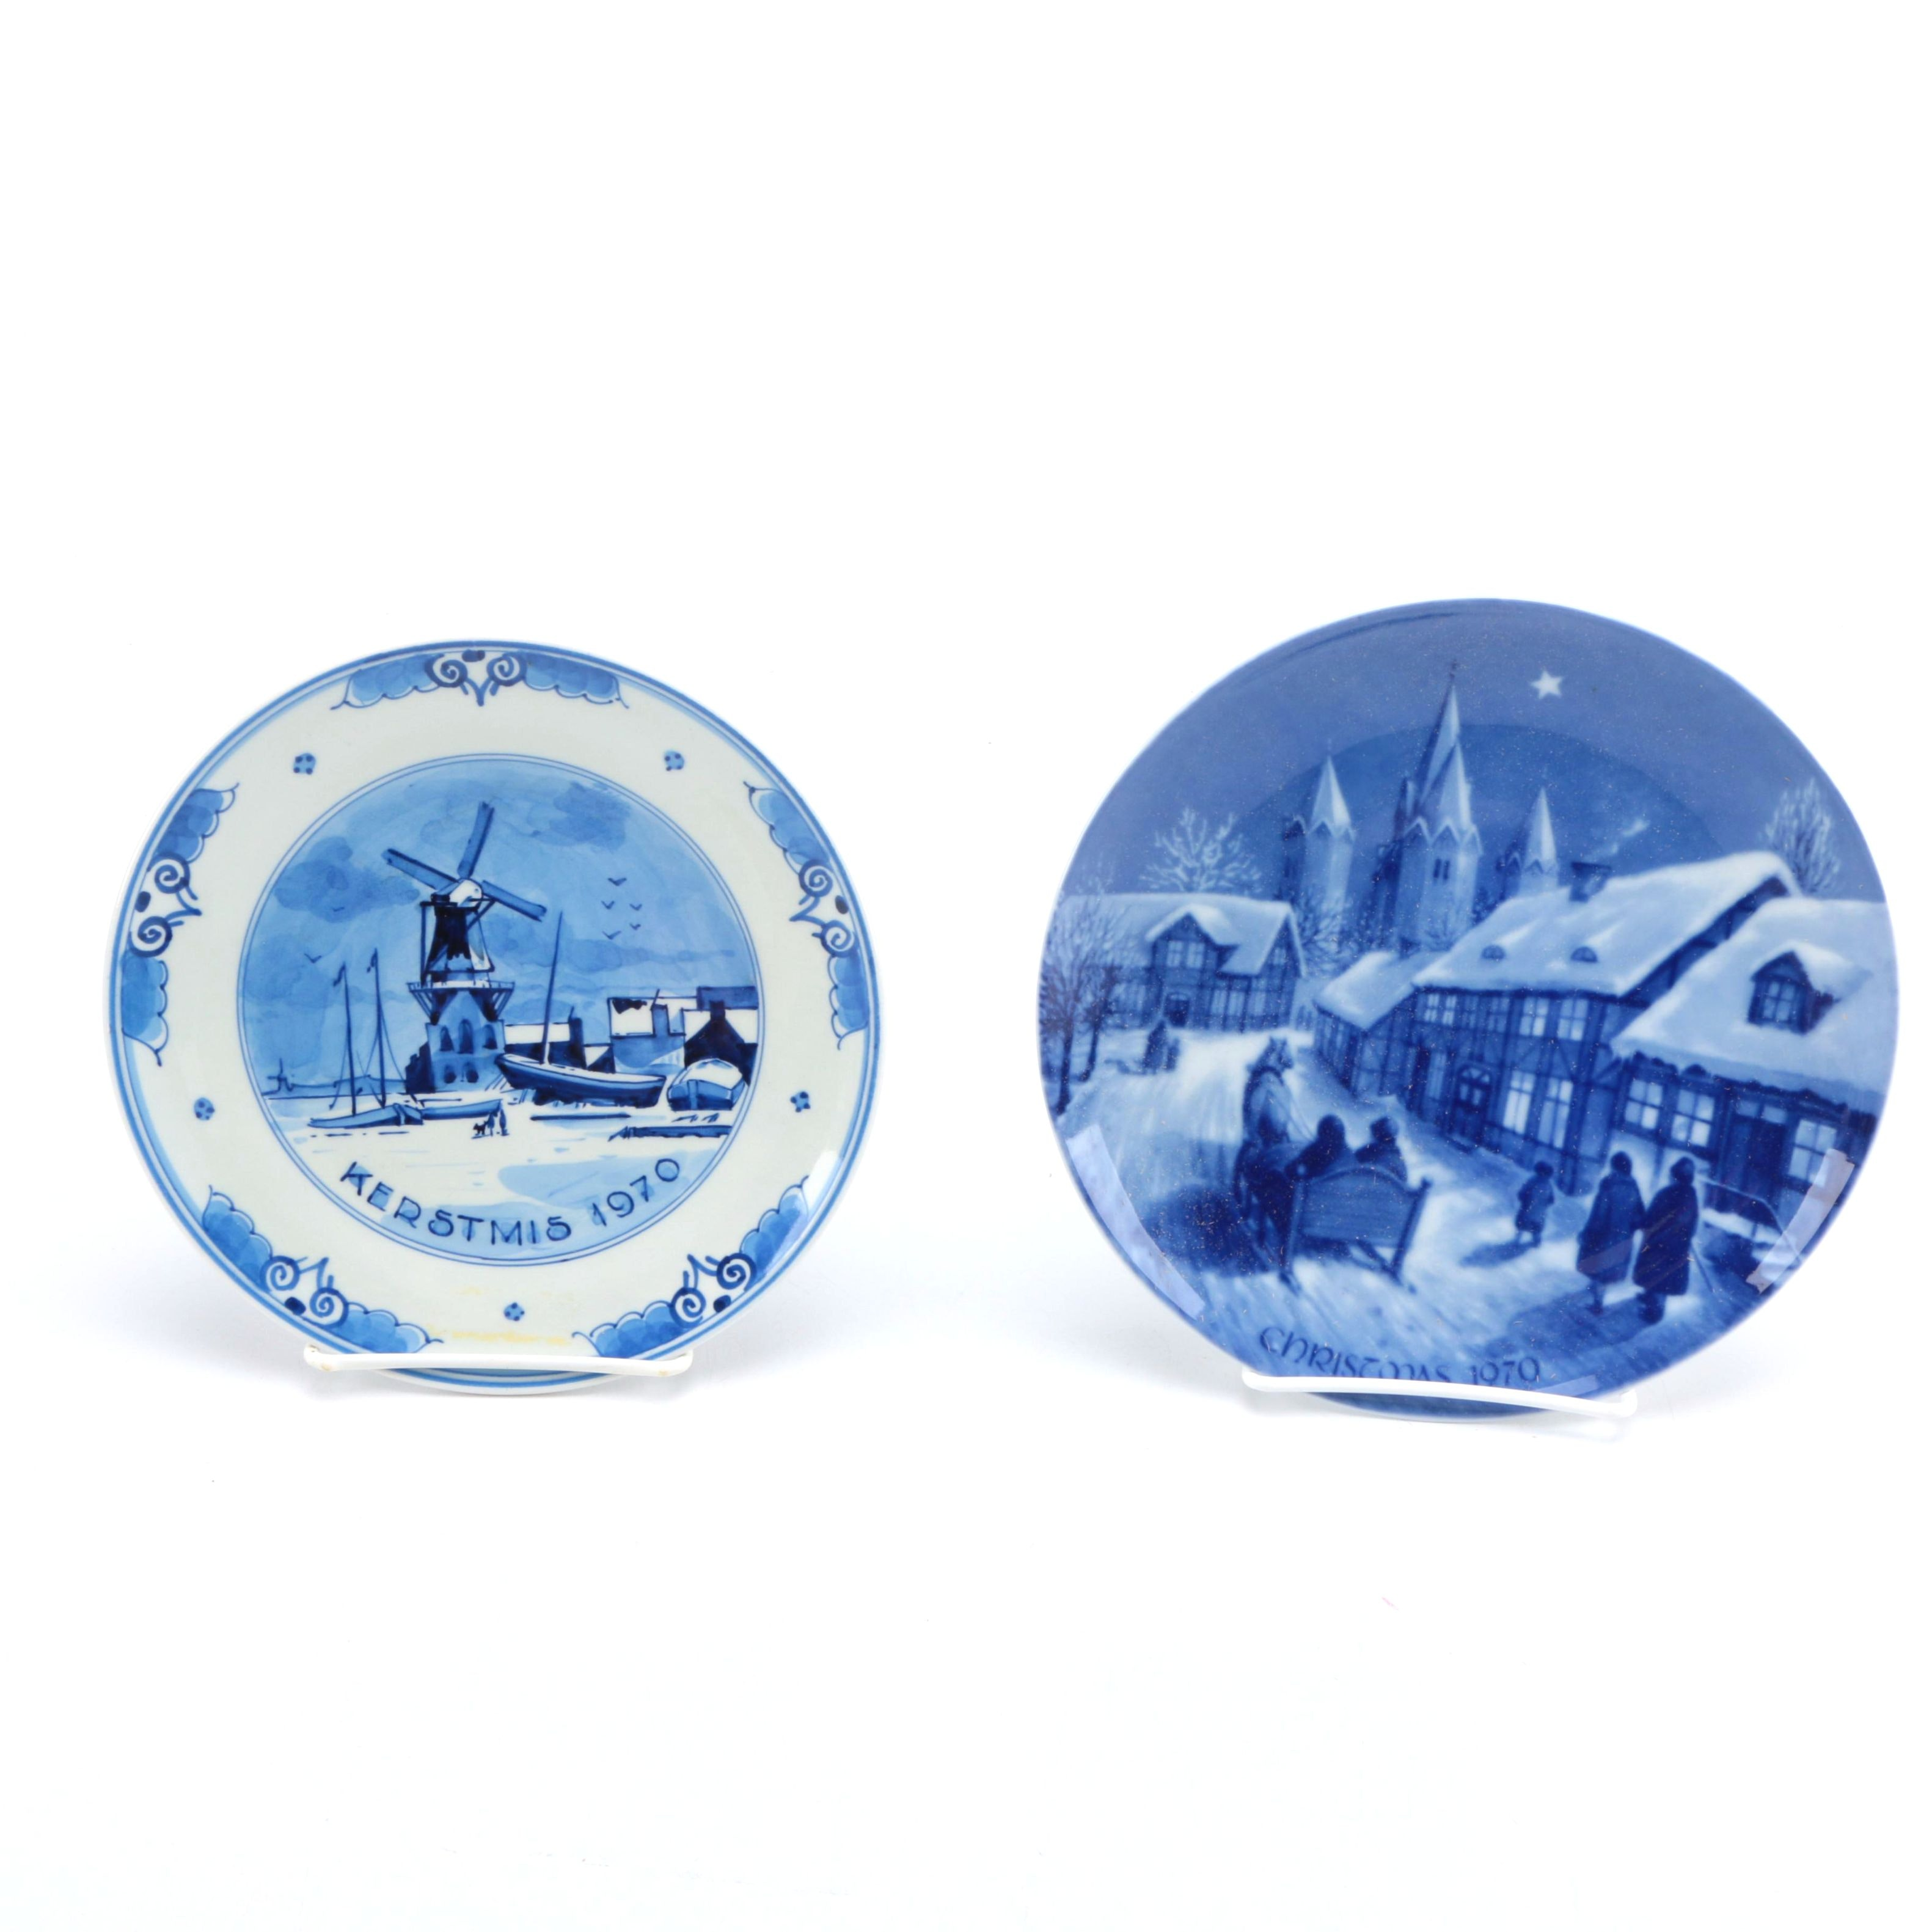 1970 Decorative Christmas Plates